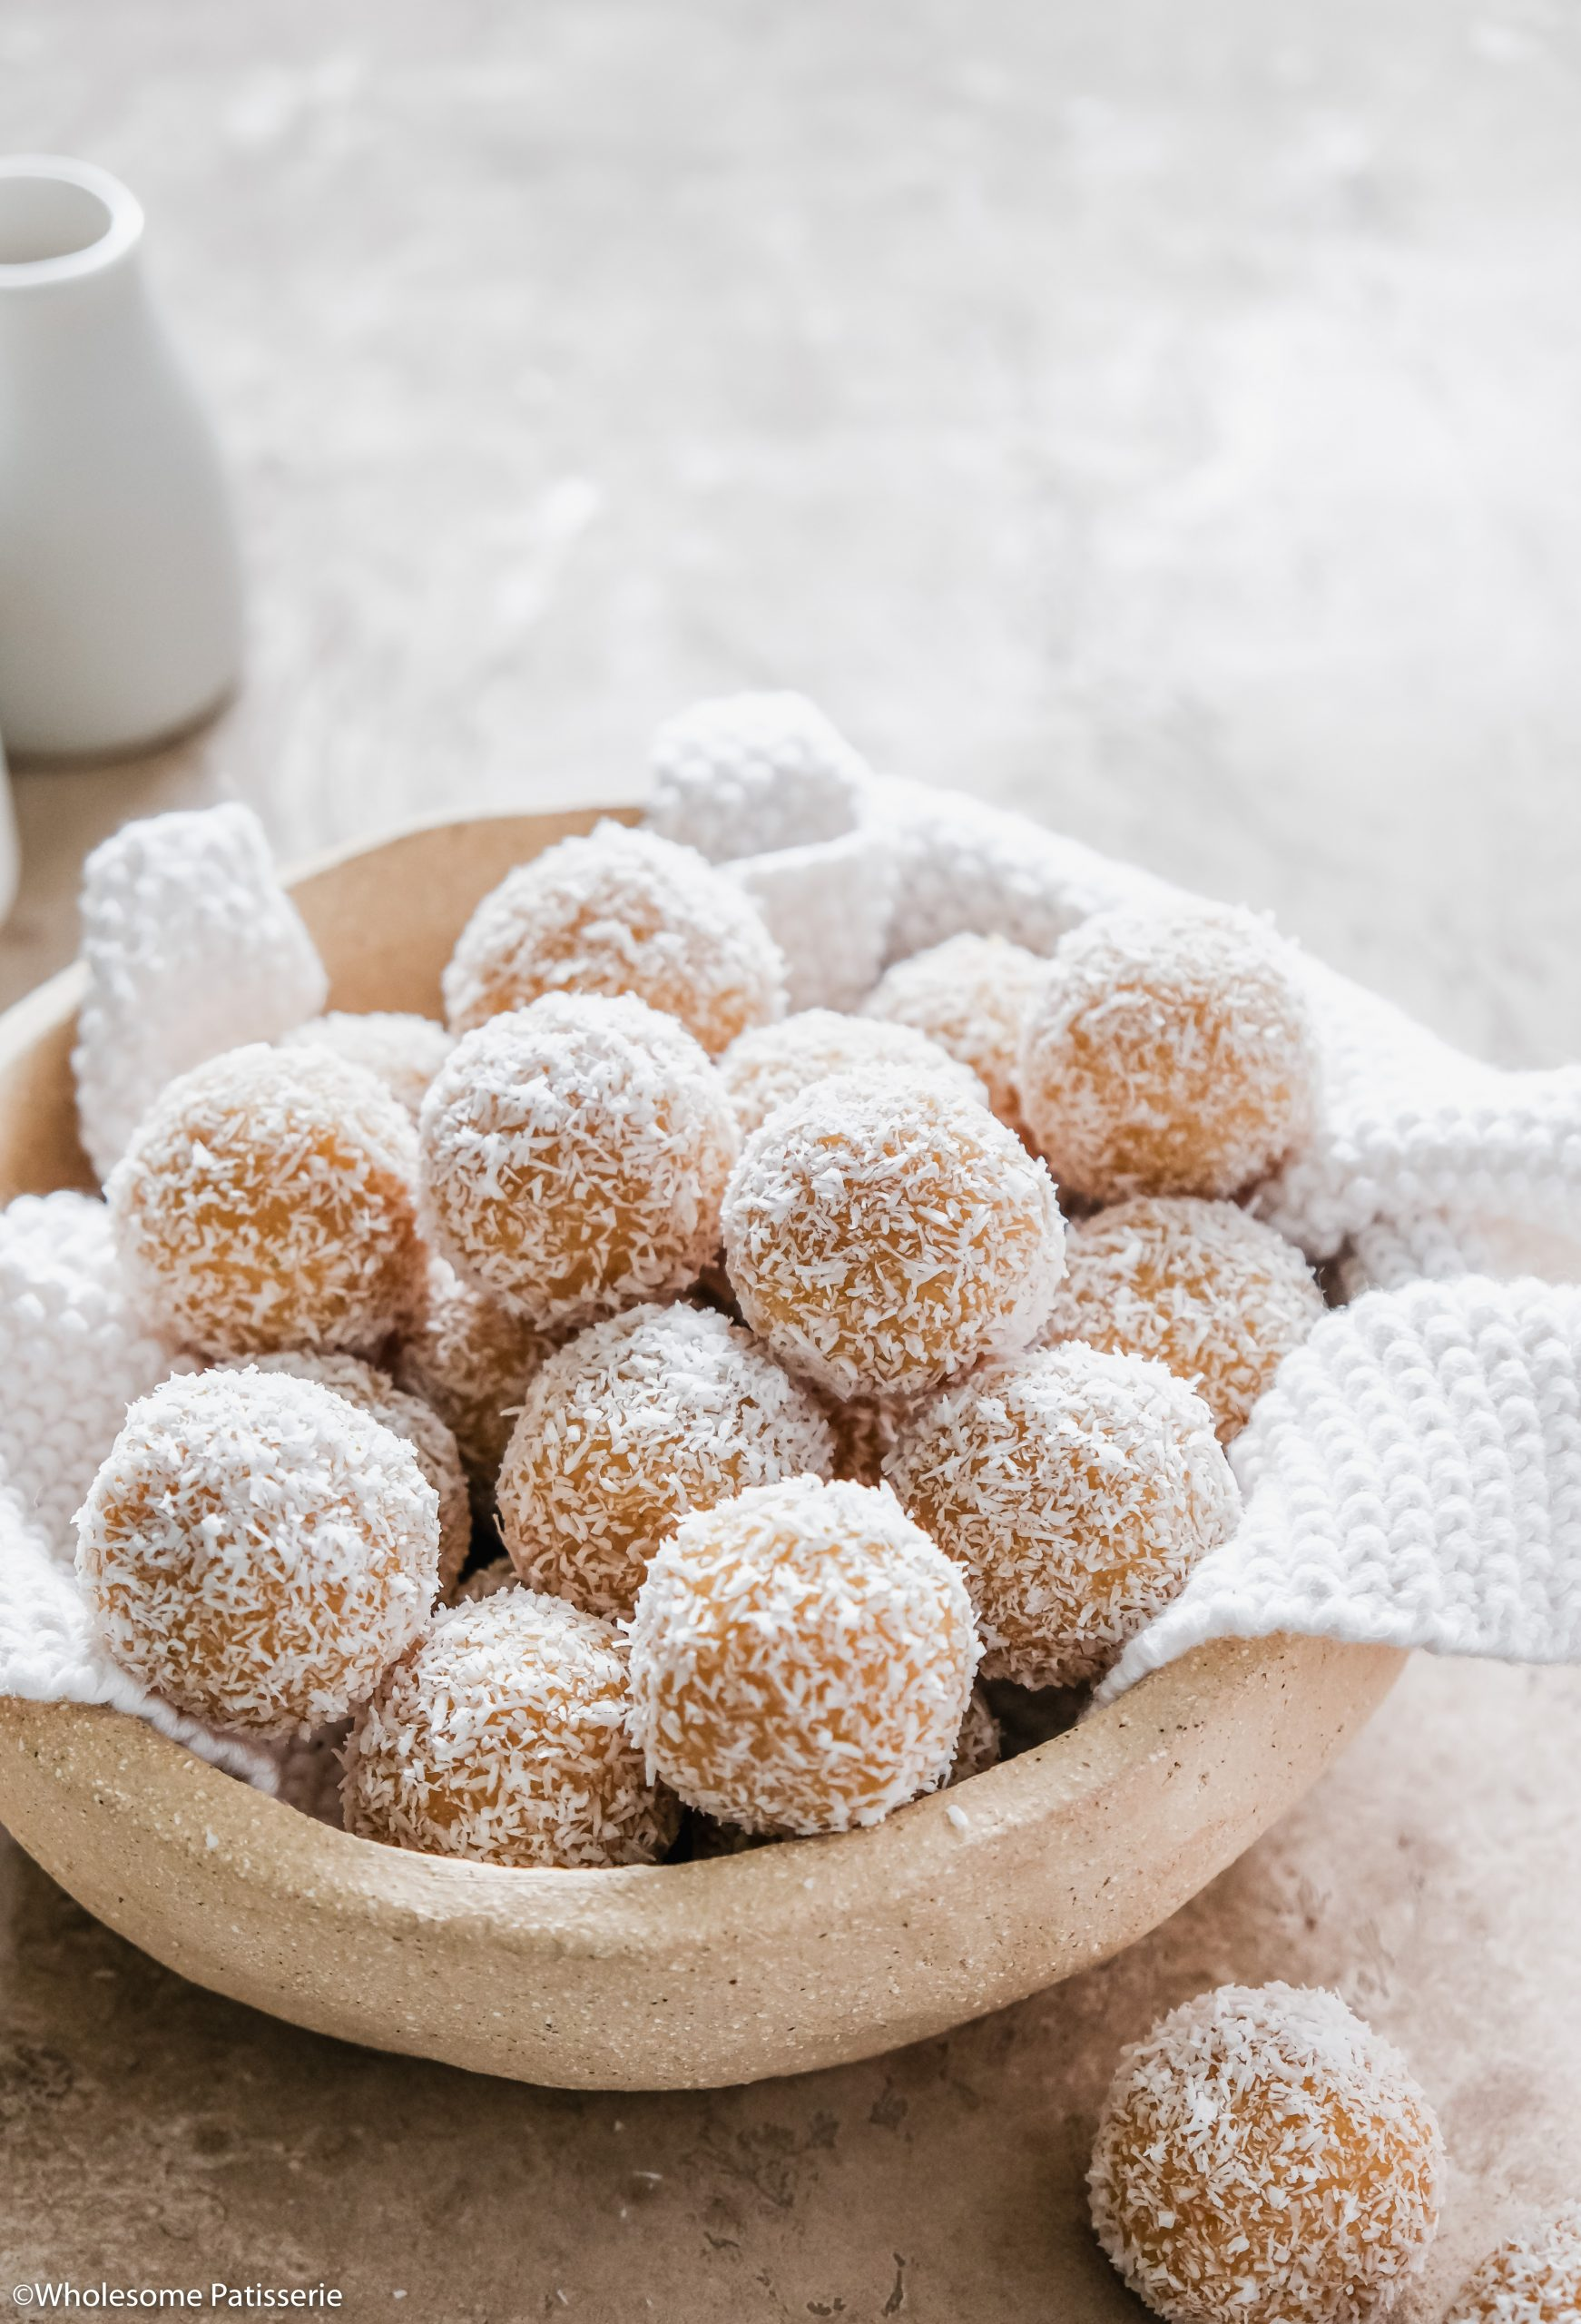 Citrus Bliss Balls! Simple homemade bliss balls infused with fresh zest and juice from lemon and orange. Sweetened with s touch of maple syrup and vanilla.